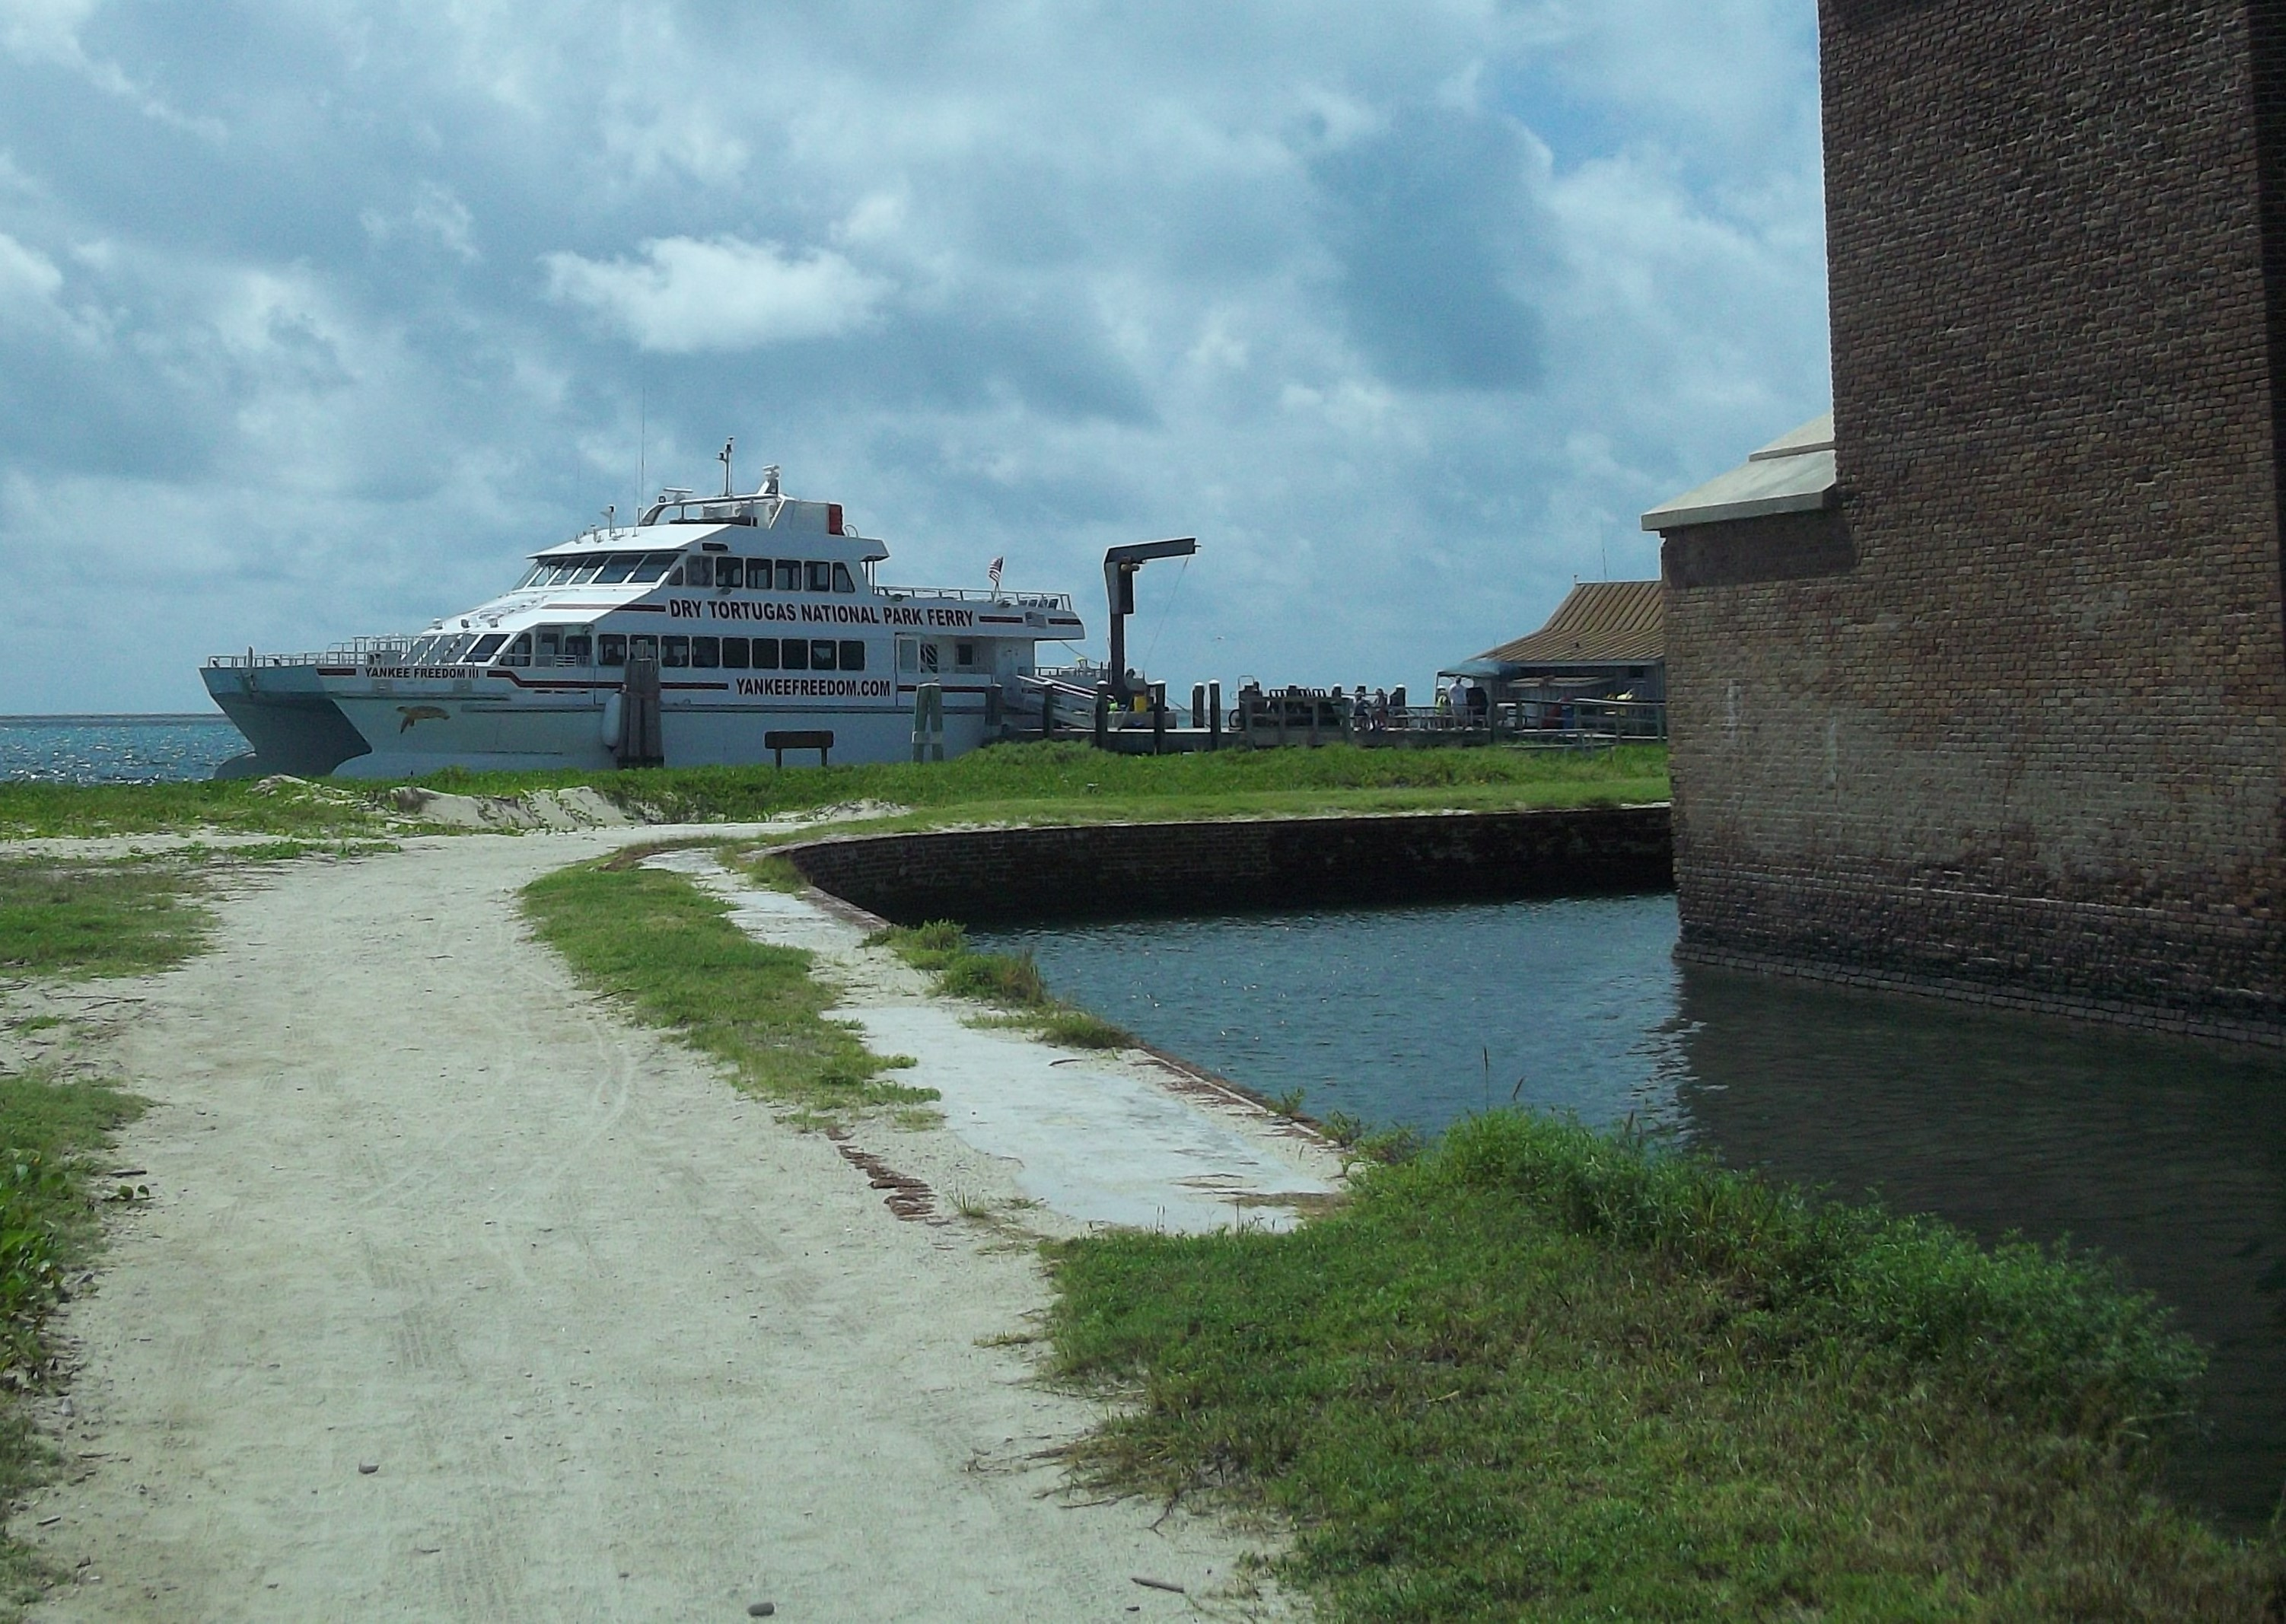 ... beach fronts the south wall of Fort Jefferson in the Dry Tortugas, NP